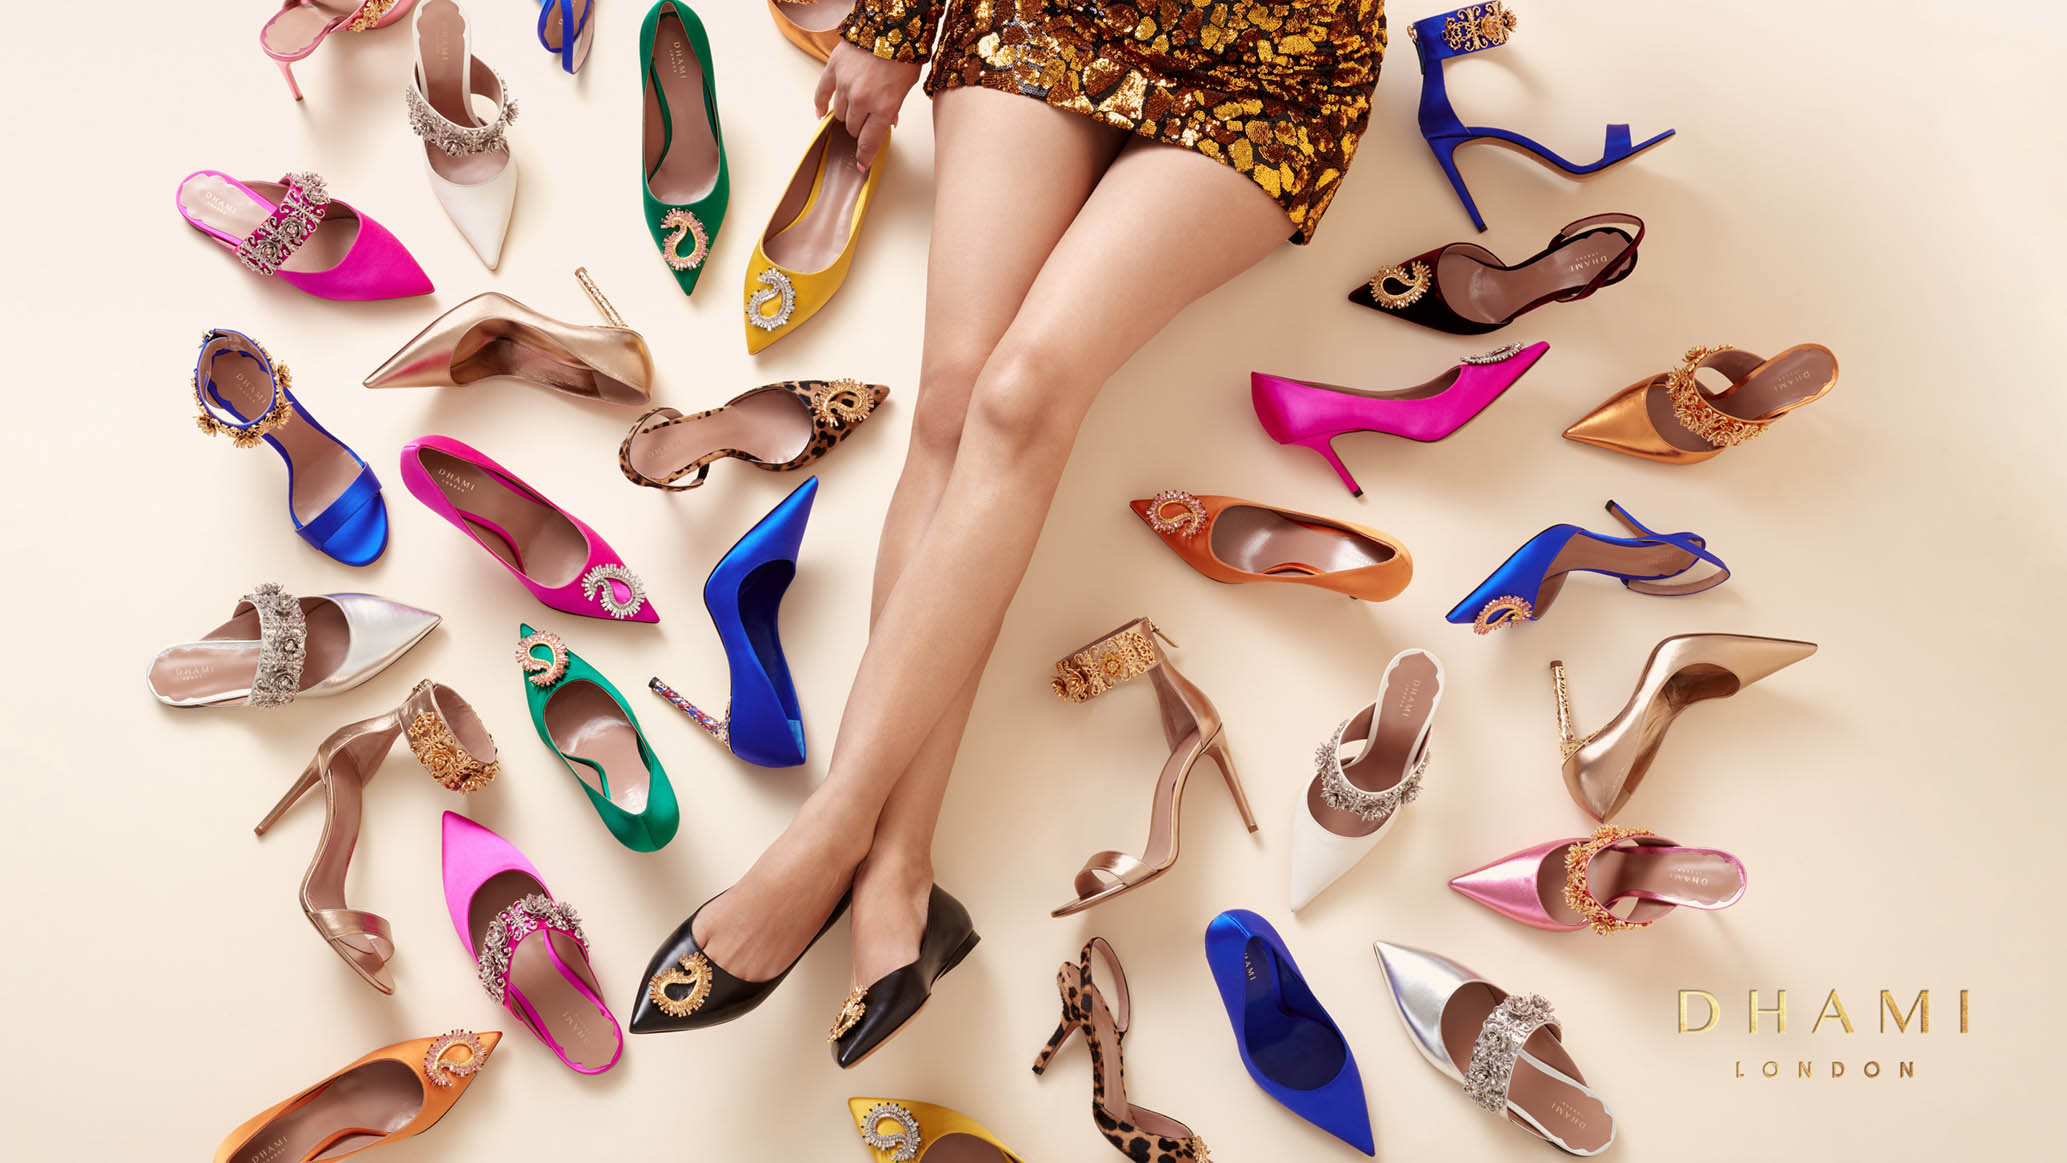 Butterfly Cannon Steps into Positive Fashion with the Brand Identity for Luxury Footwear Brand DHAMI London